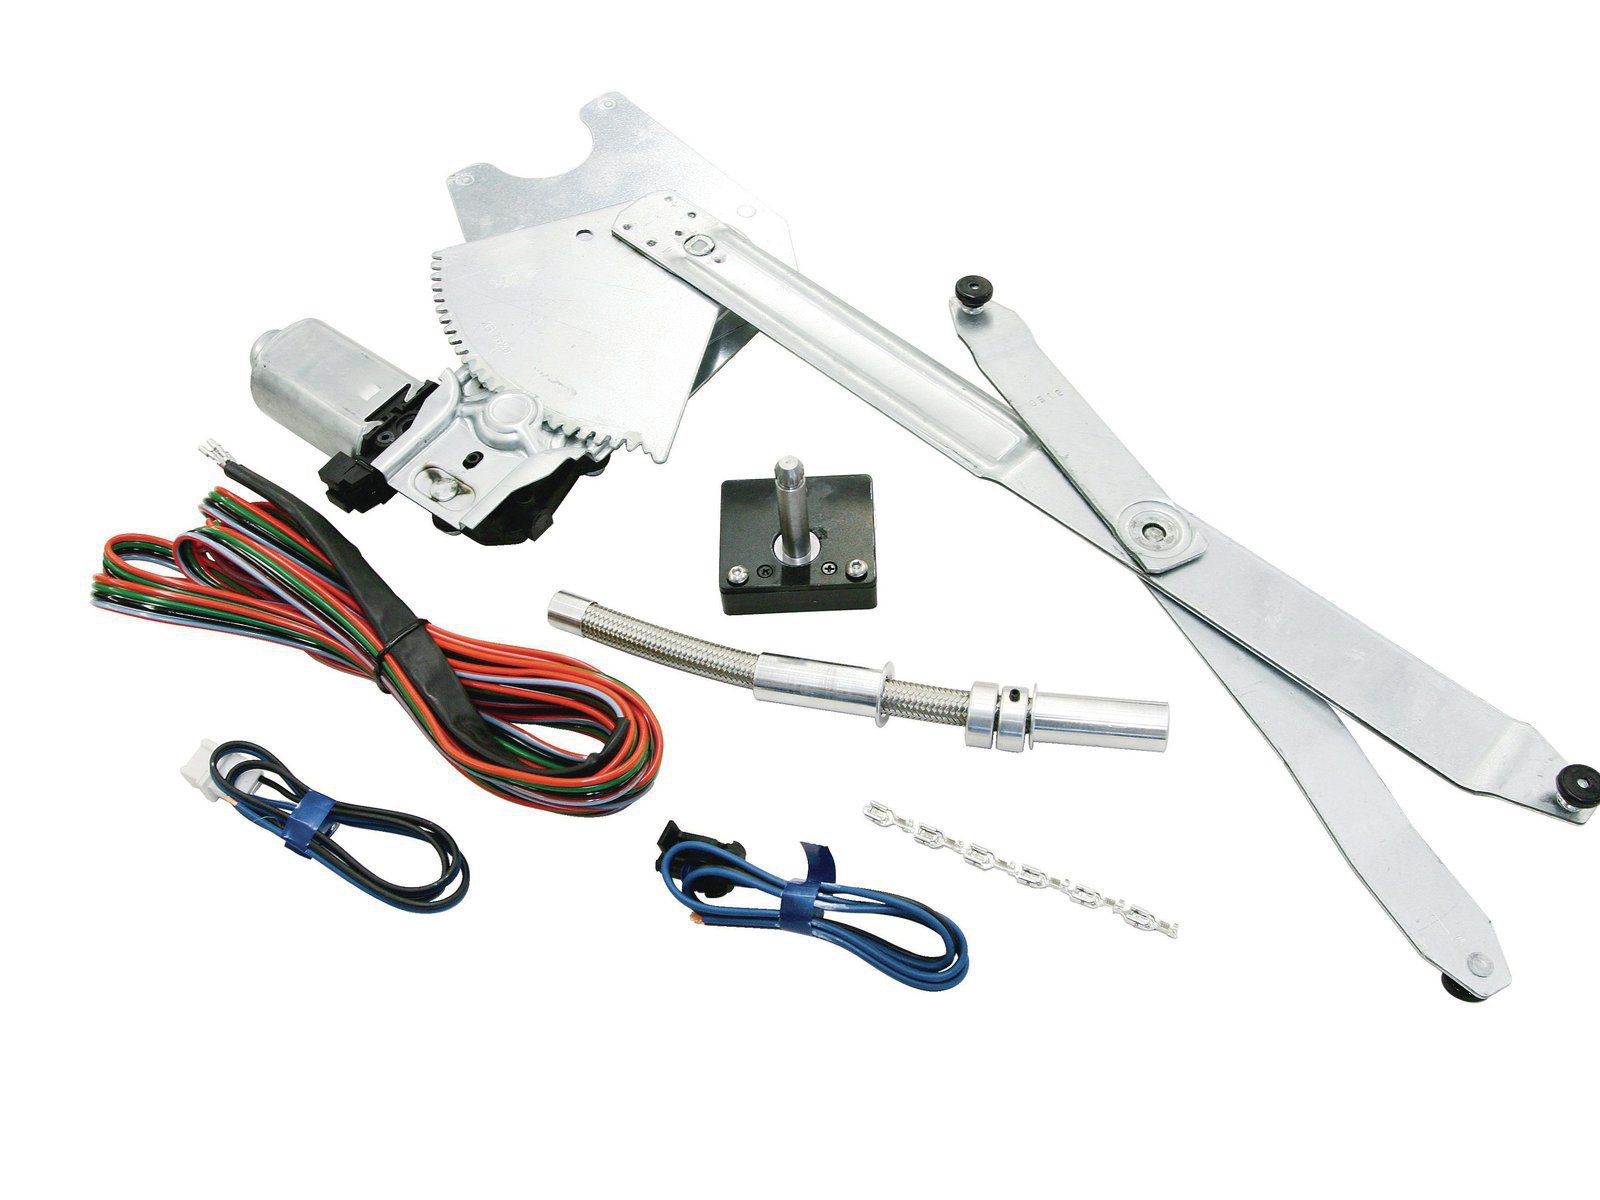 1. Here's the entire Electric-Life kit for one window. It consists of their proprietary regulator/motor mechanism (part number GM49-K), billet wire loom, power crank switch (part number 45820), and the necessary wiring.